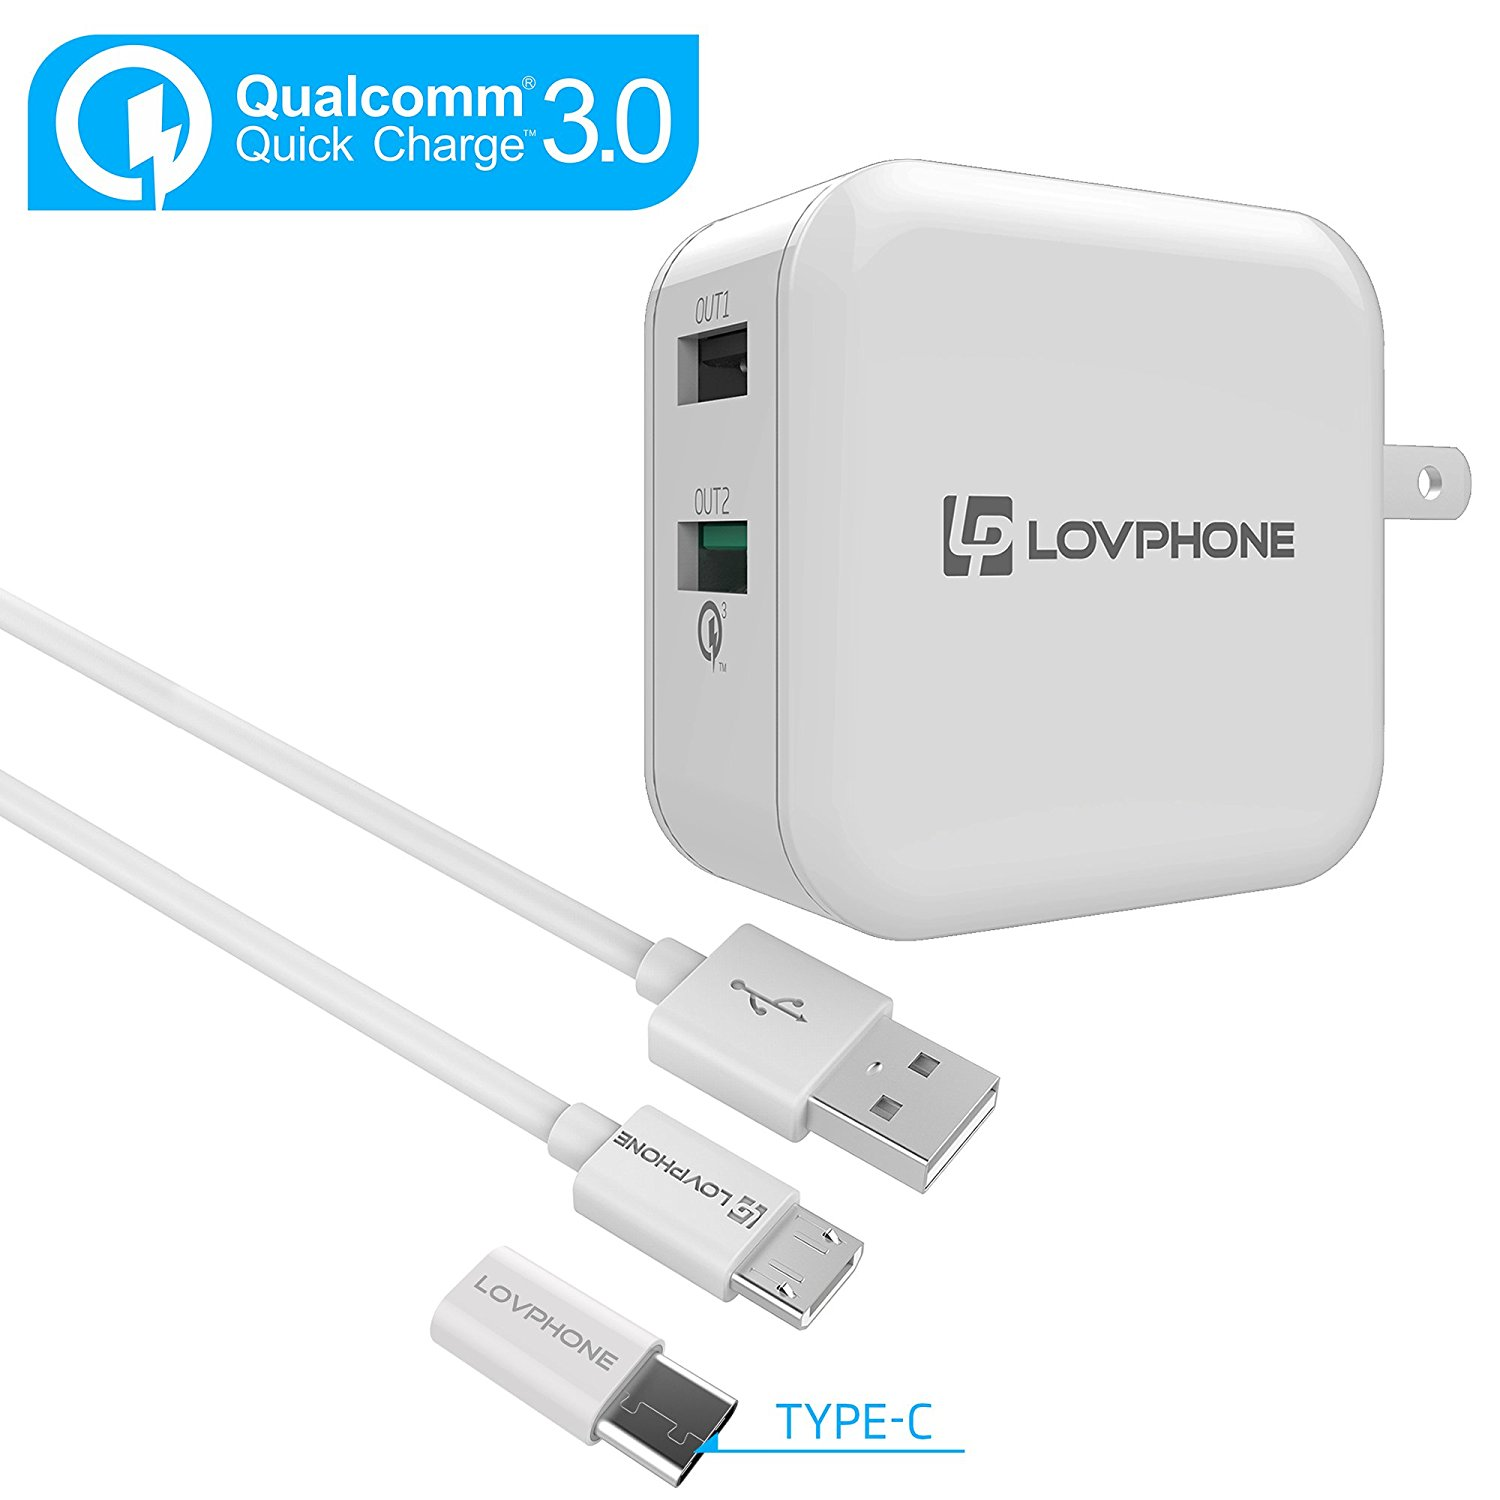 Wall Charger Adapter Set / Travel Charger Quick Charge 3.0 Fast Charge - LOVPHONE 2-Port Dual USB Travel Charger Adapter[Quick Charge 2.0 Compatible]-White Set with Micro USB Cable and Type-C adapter